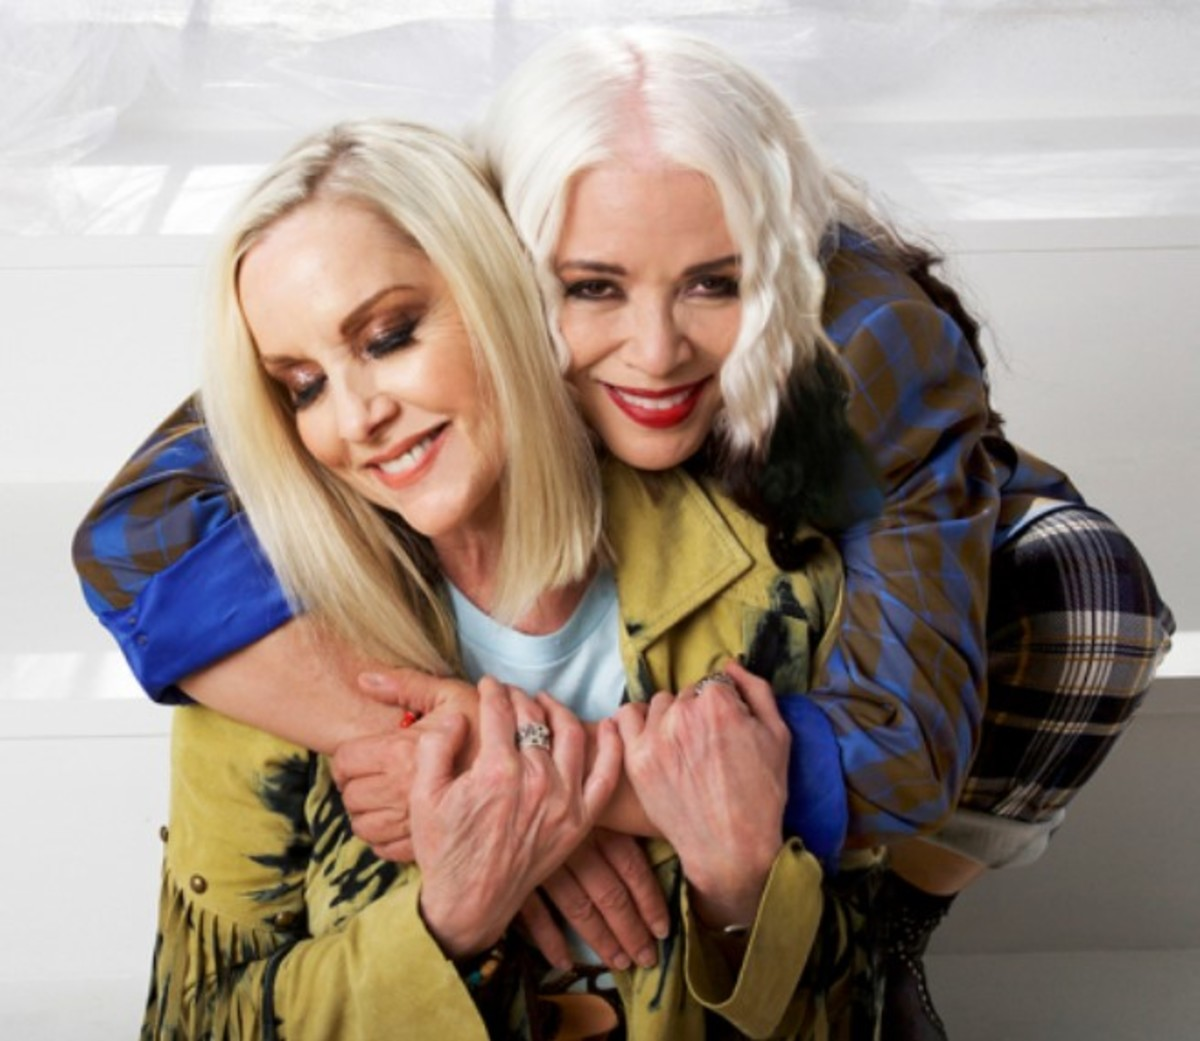 Cherie Currie, left, and Brie Darling, right, courtesy of Blue Elan Records.